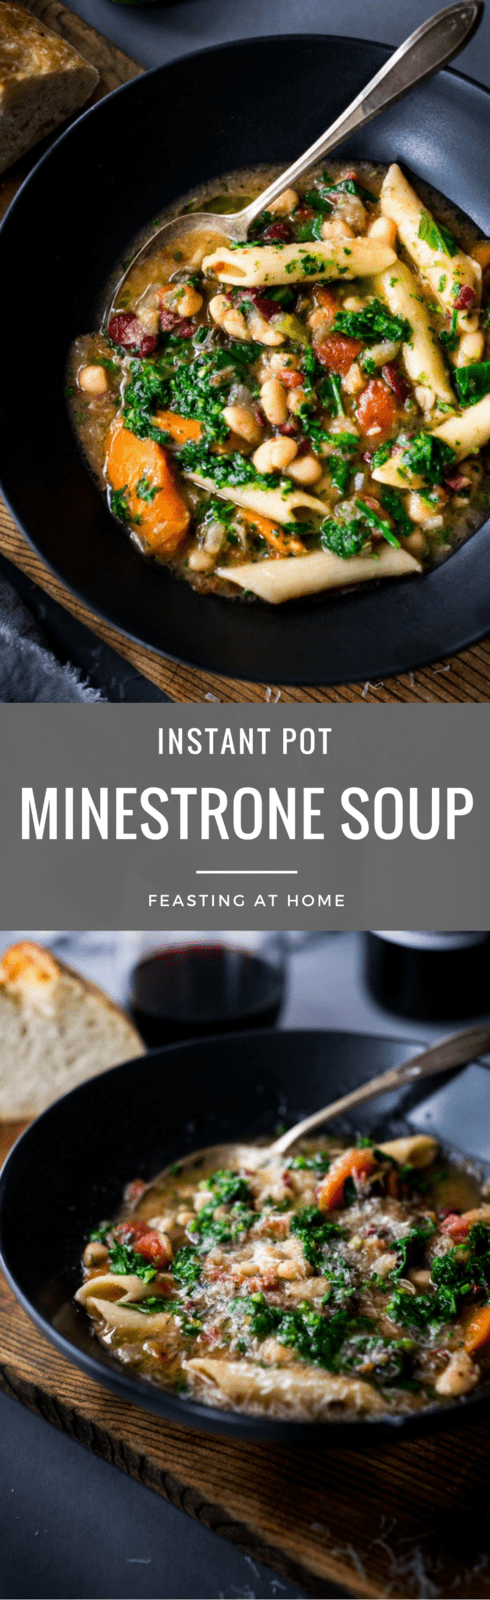 Instant Pot Minestrone Soup - loaded up with healthy veggies, 2 kinds of beans - this version is vegan and gluten-free adaptable. But it's the fennel bulb that makes this Minestrone Soup truly special – giving it a unique and delicious complexity! #vegansoup #instantpotminestrone #instantpot #minestrone #veganminestrone